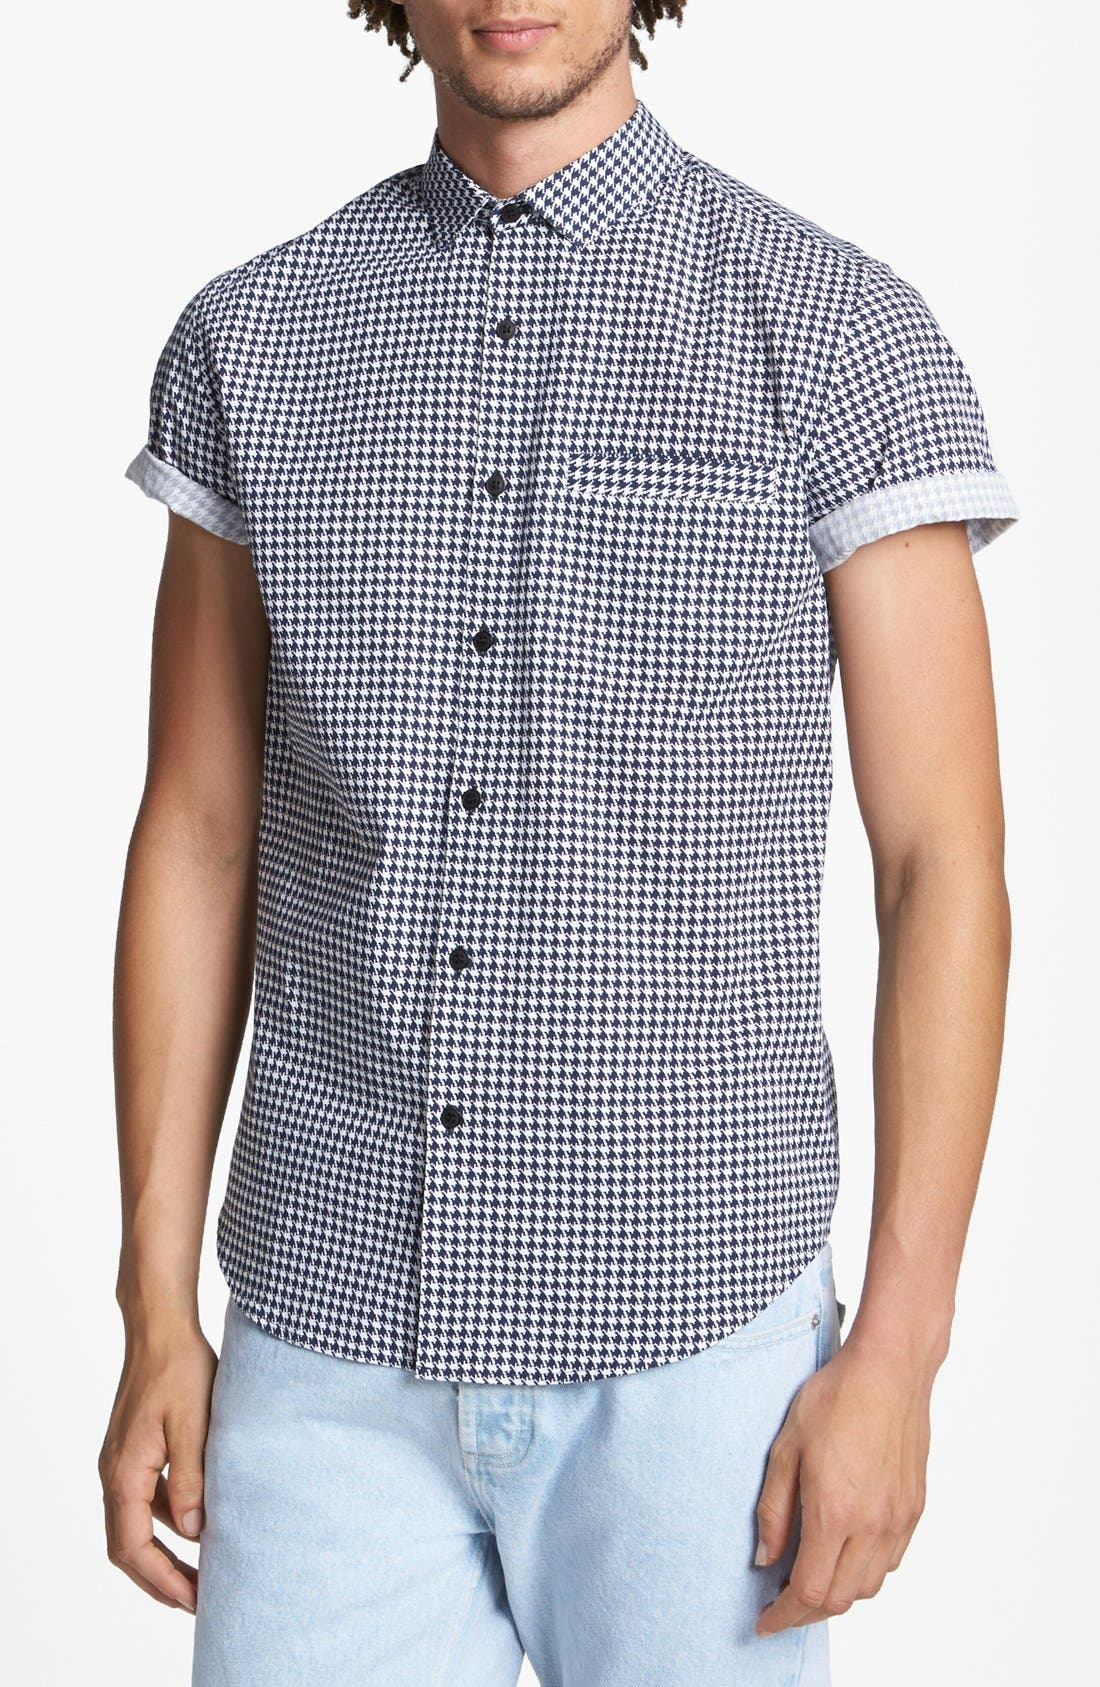 Alternate Image 1 Selected - Topman Micro Houndstooth Shirt